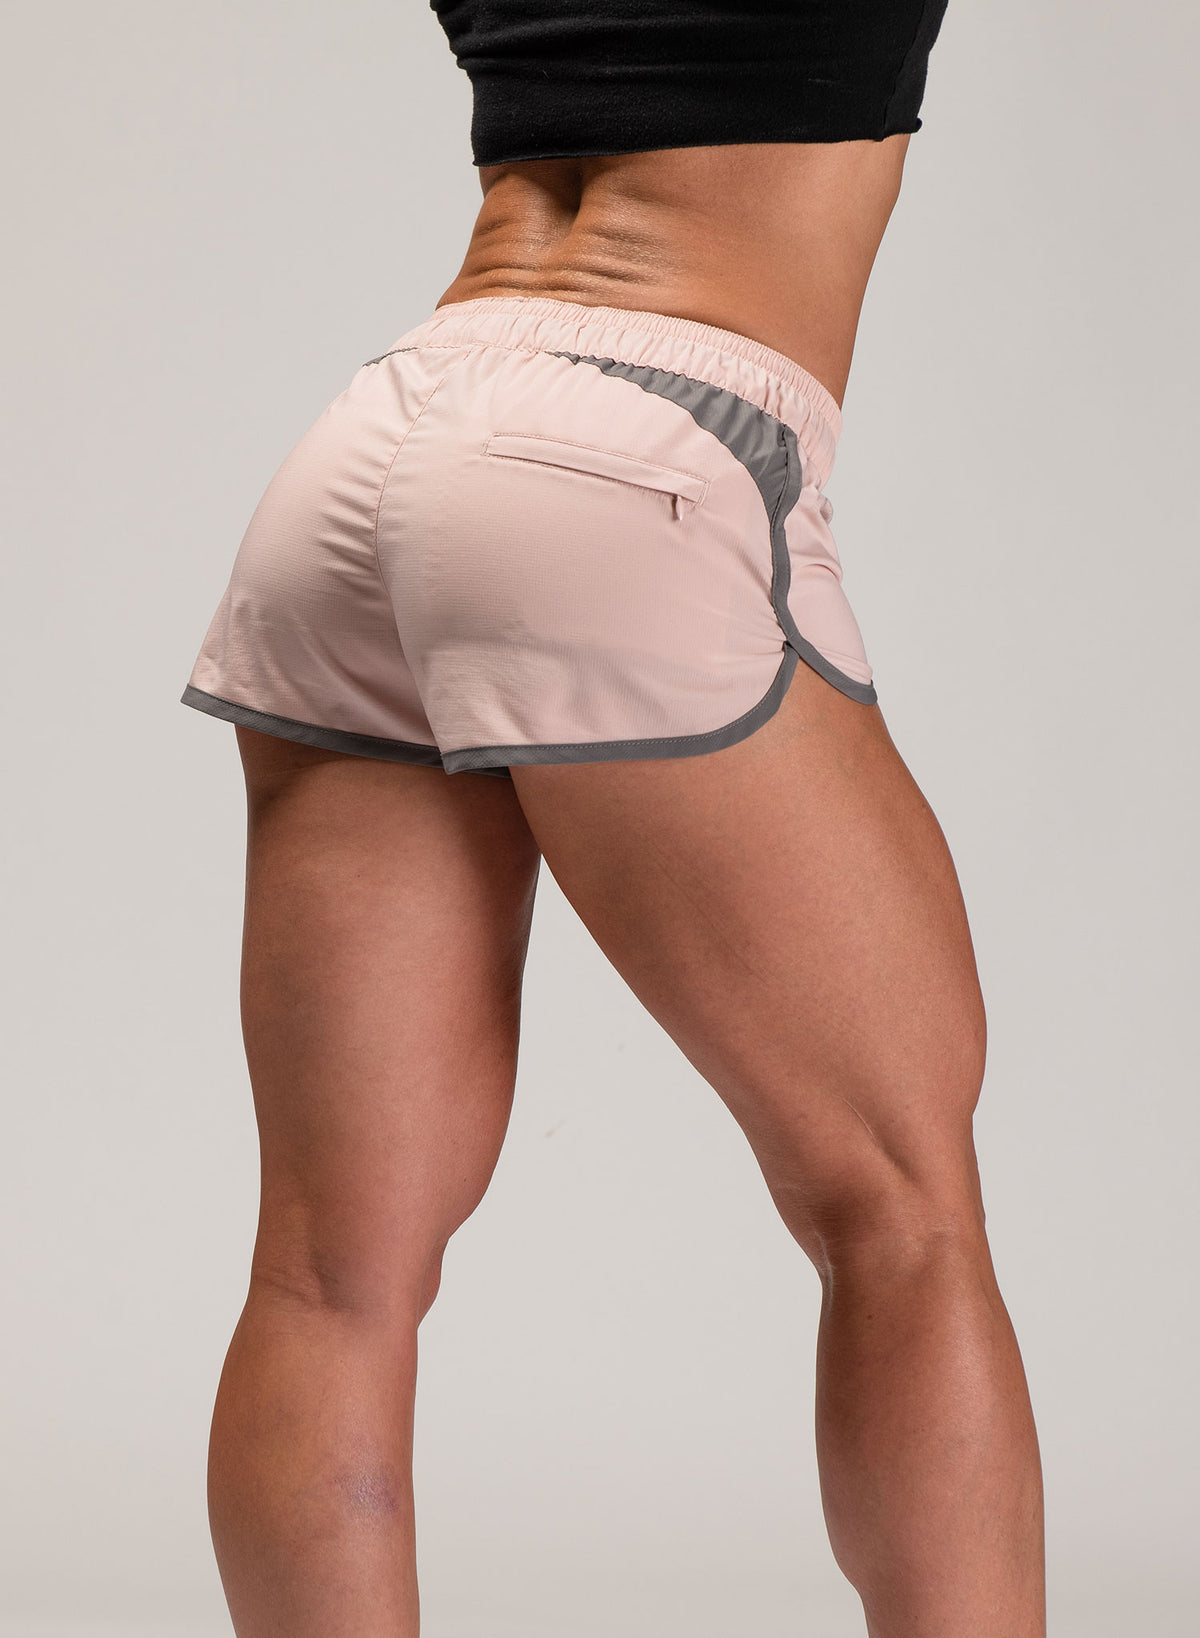 FNF APEX SHORTS - BLUSH